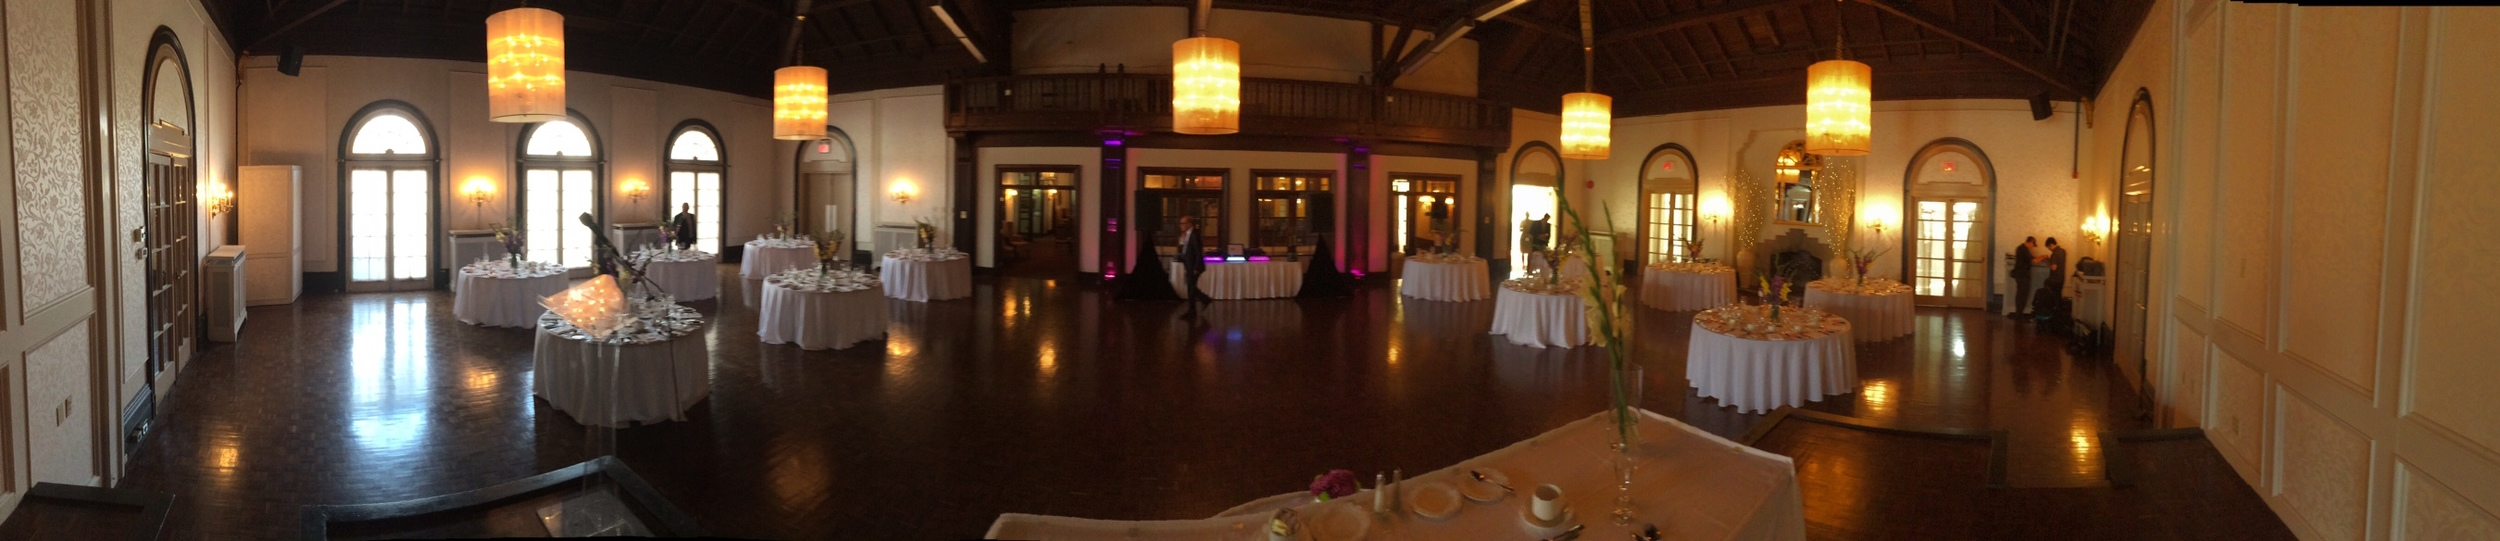 the boulevard club panoramic del vinyl wedding.JPG